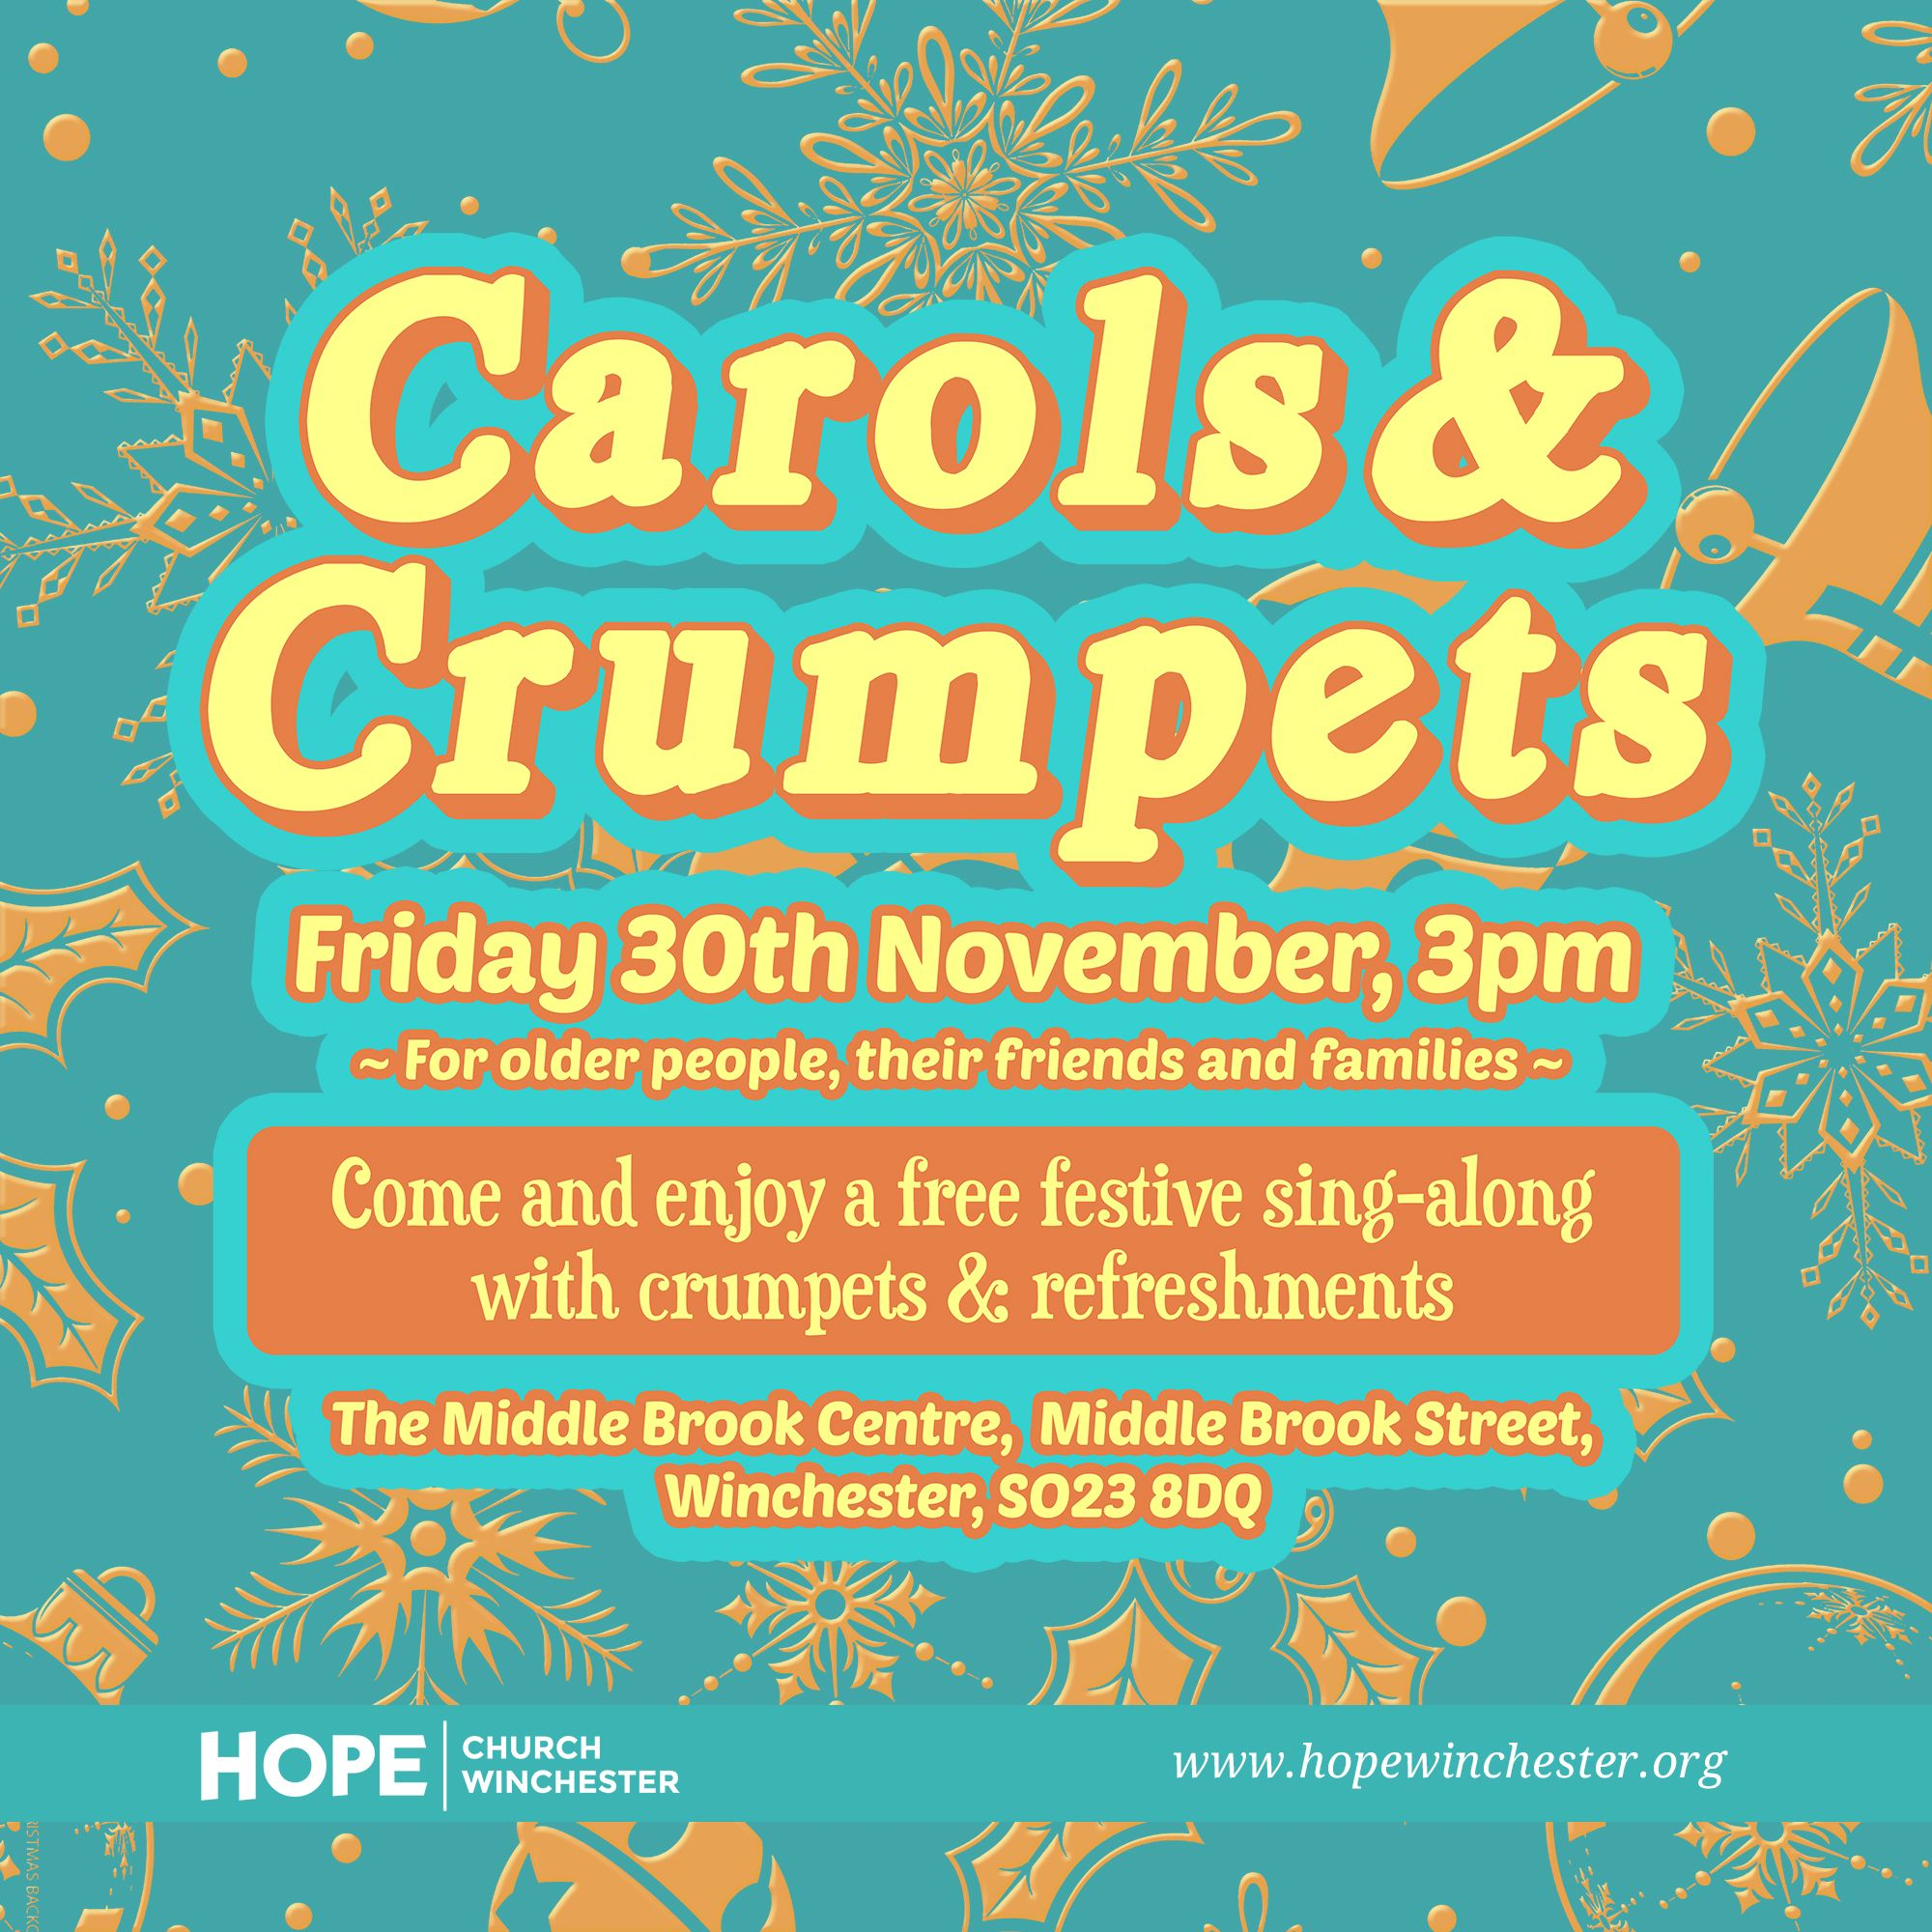 Carols and Crumpets for older people, their friends and families.